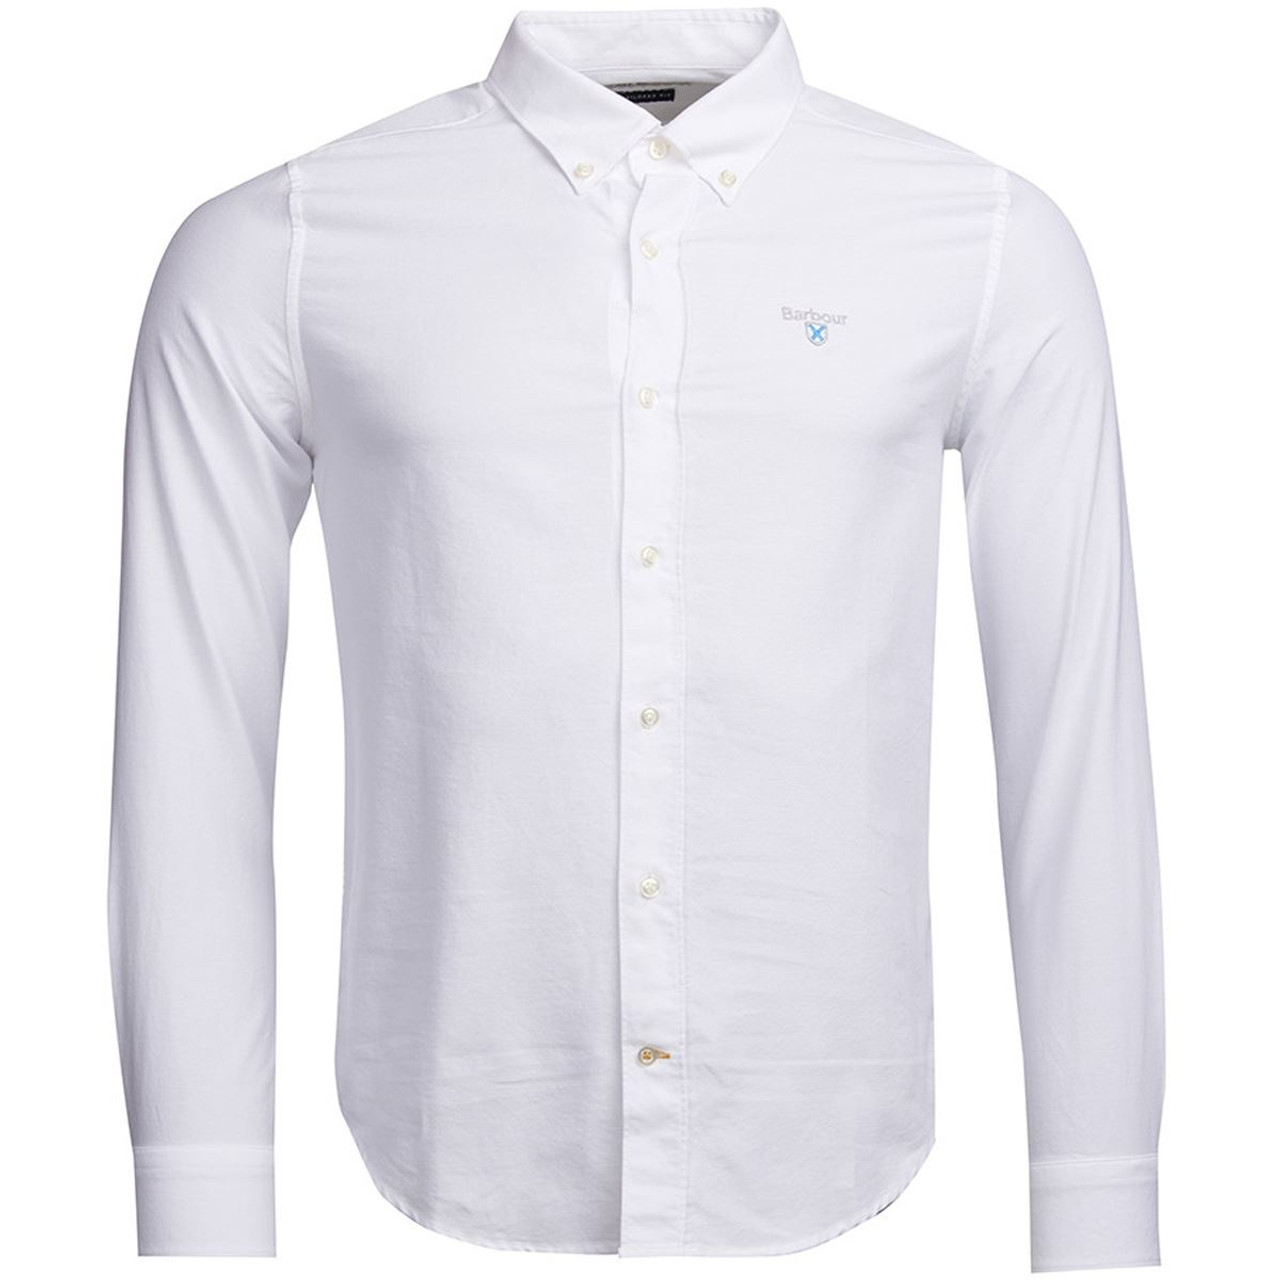 Barbour Oxford 3 Tailored Shirt - White